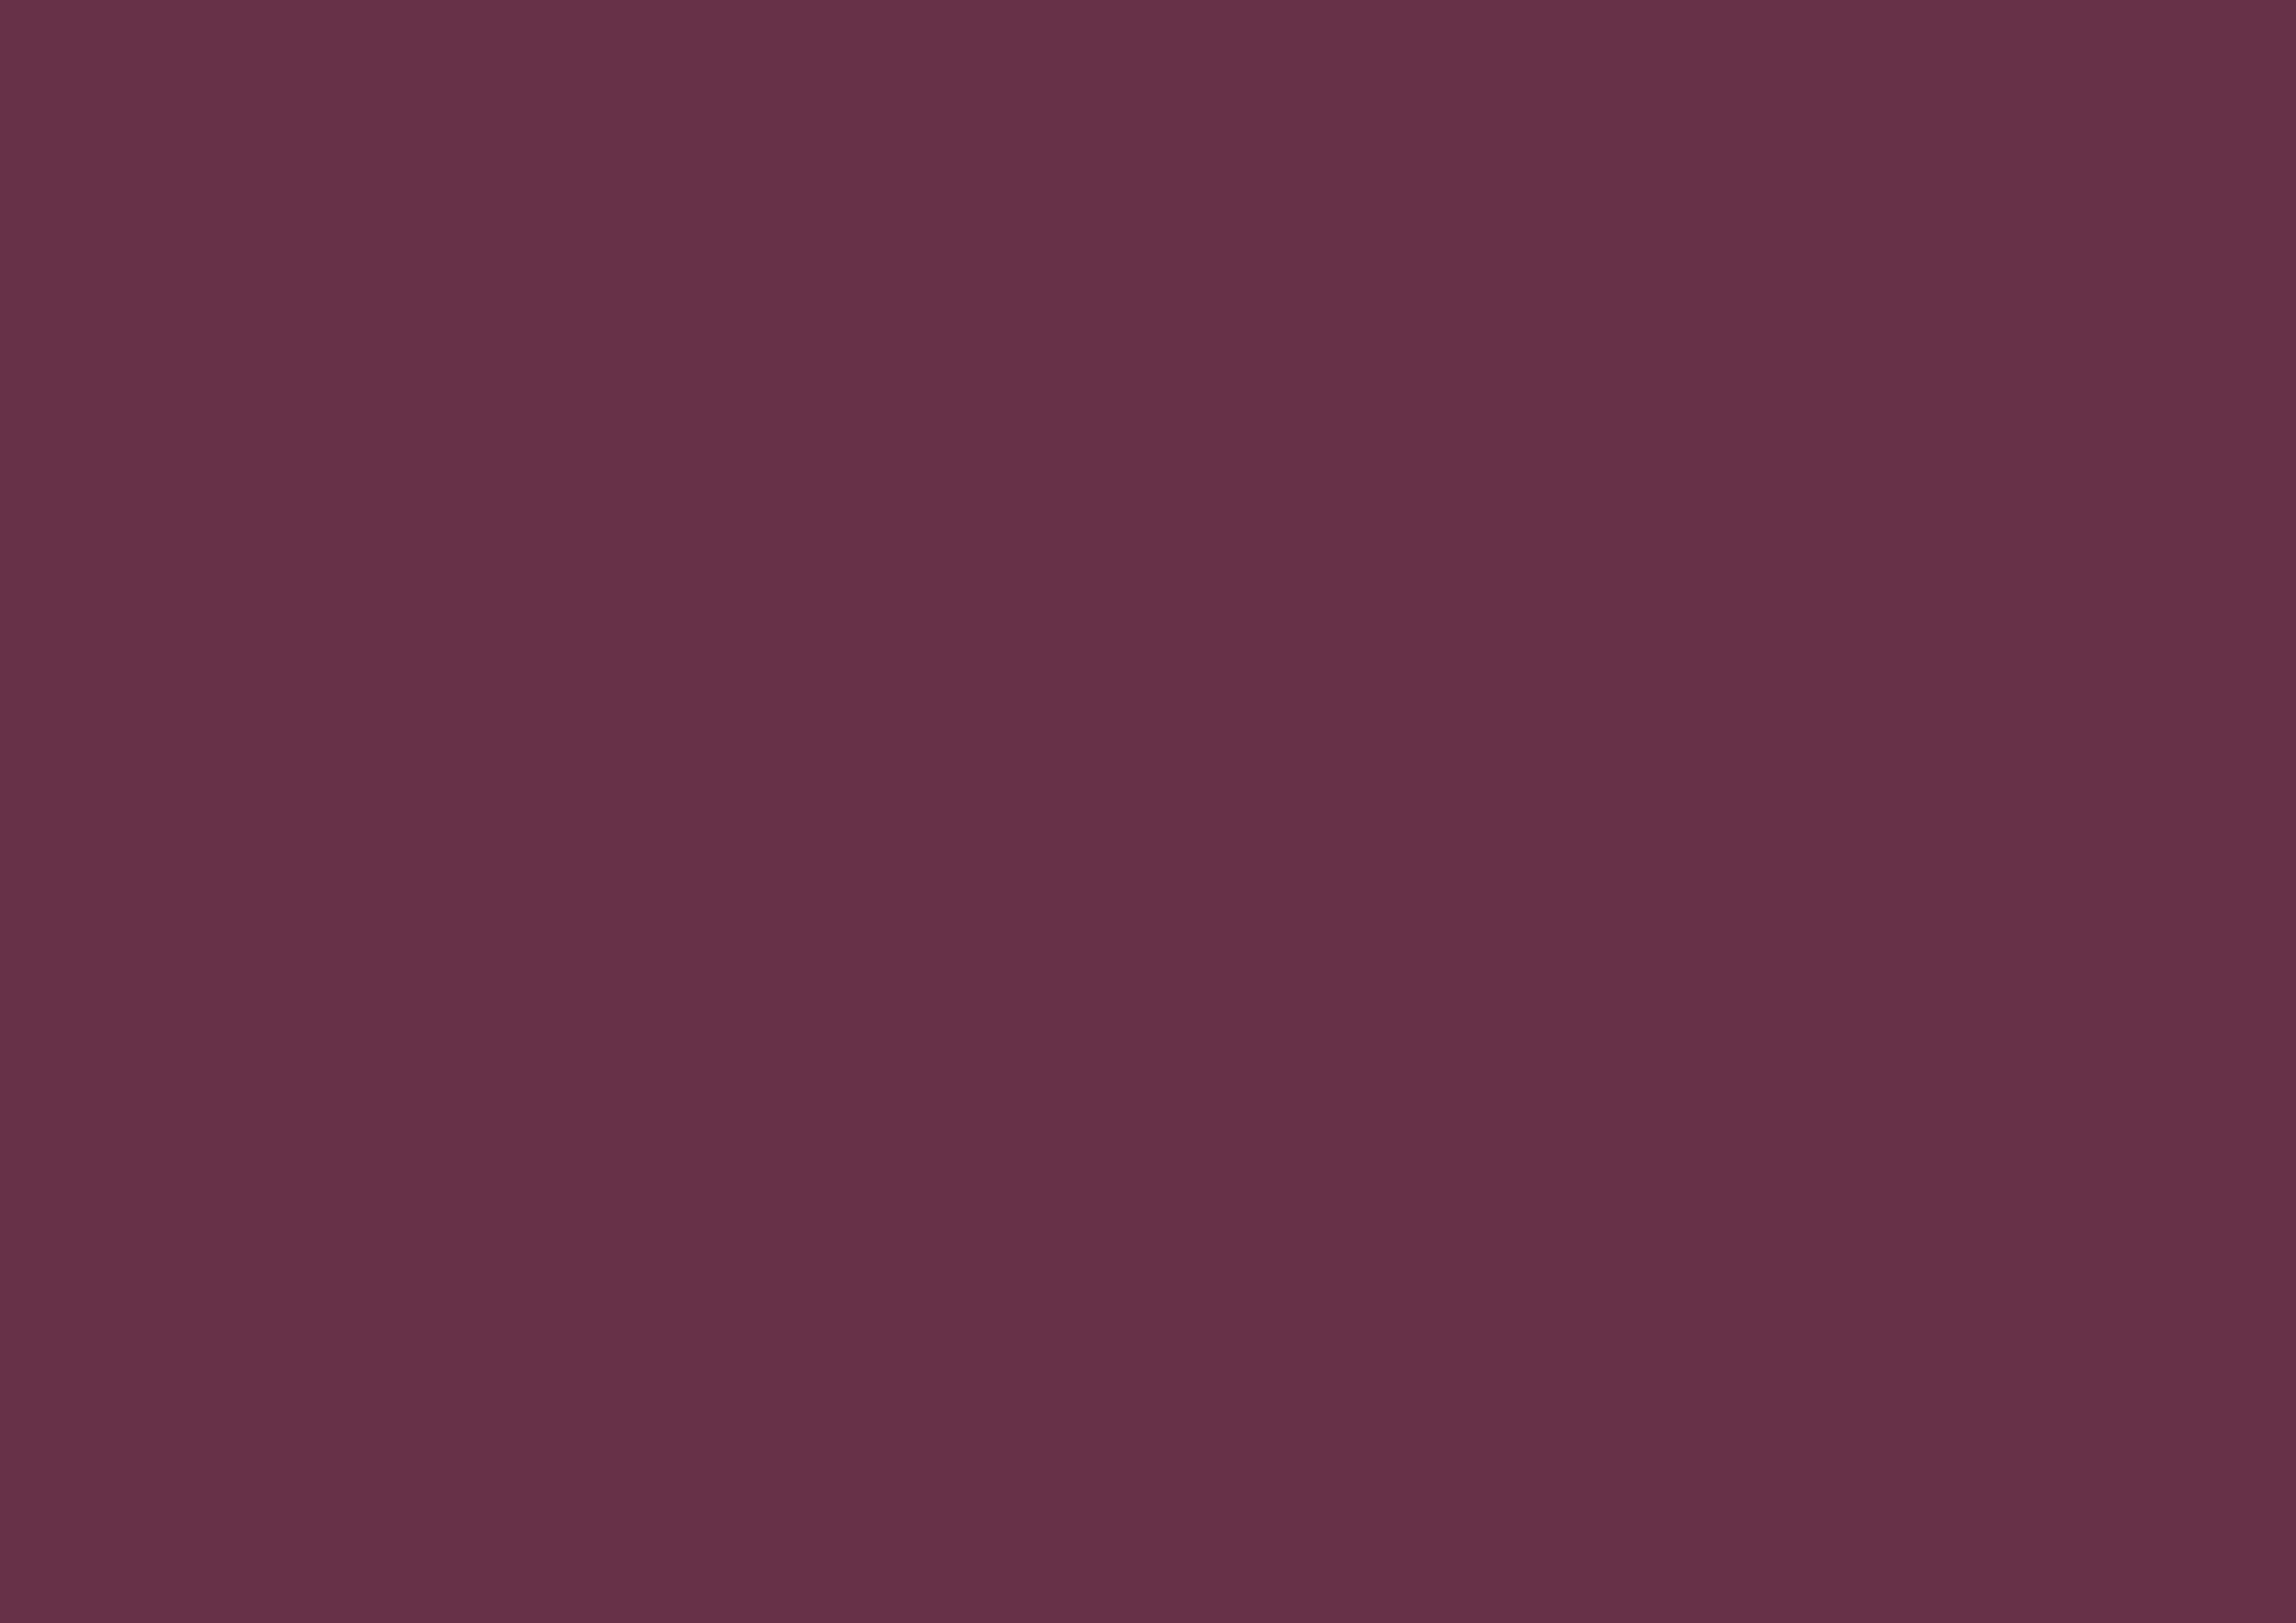 3508x2480 Old Mauve Solid Color Background